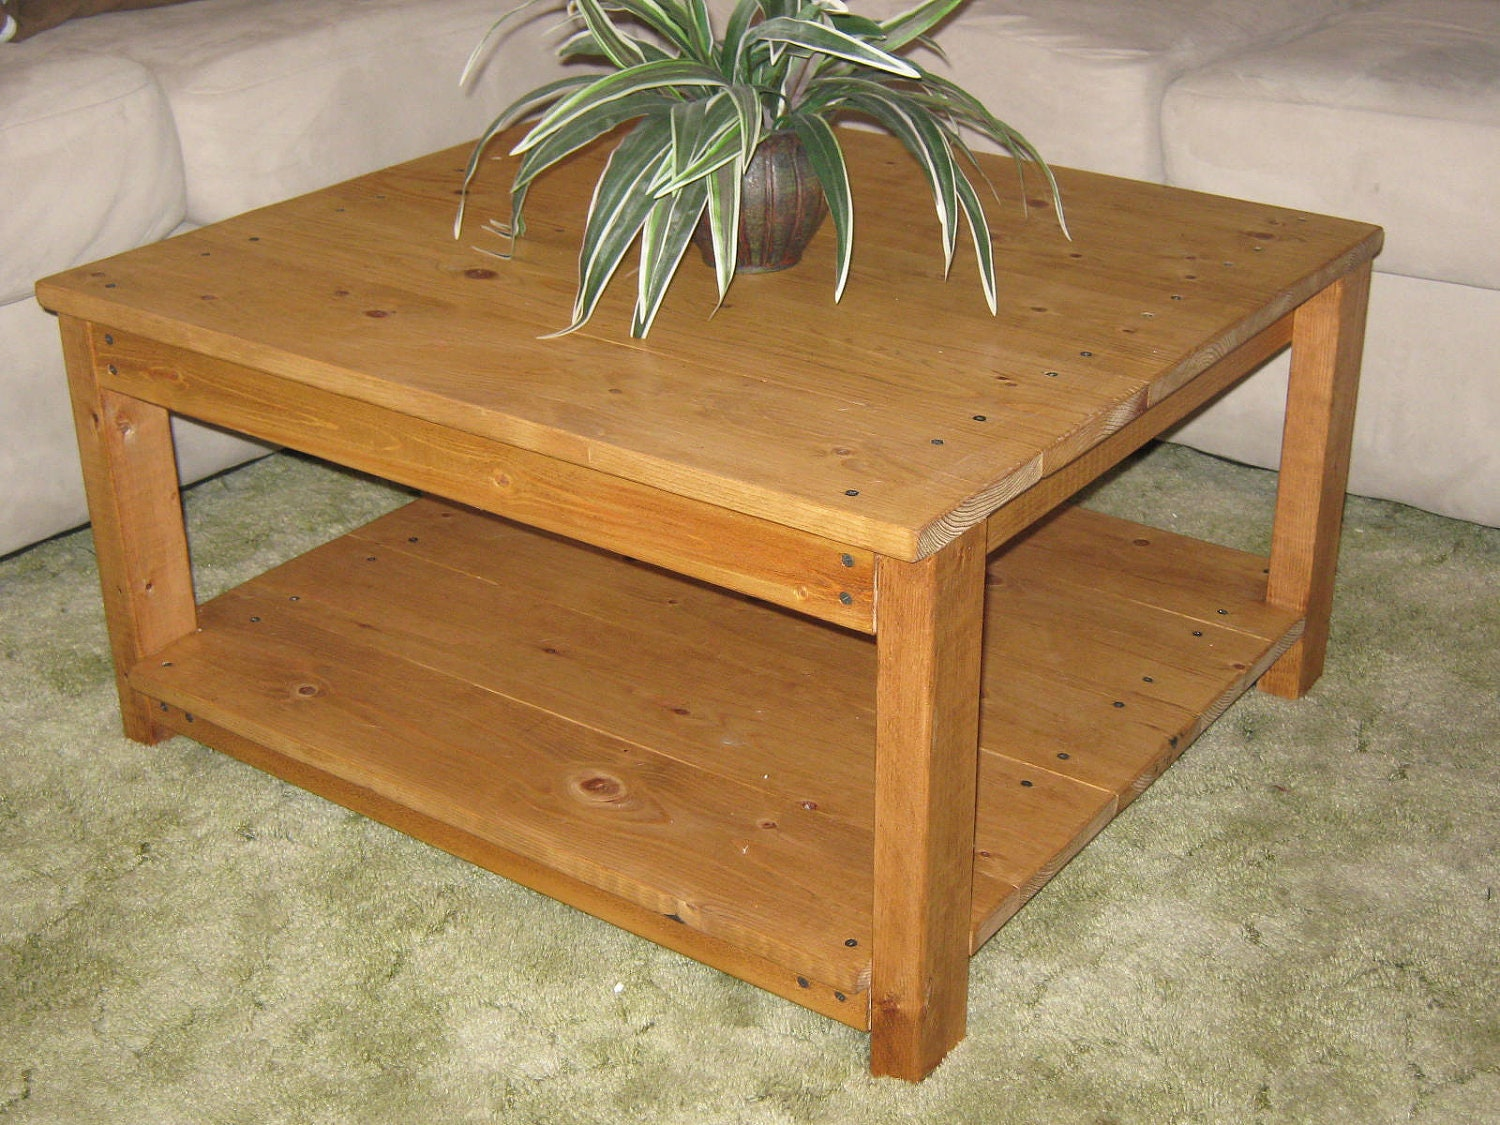 Diy Plans To Make Square Wooden Coffee Table By Wingstoshop